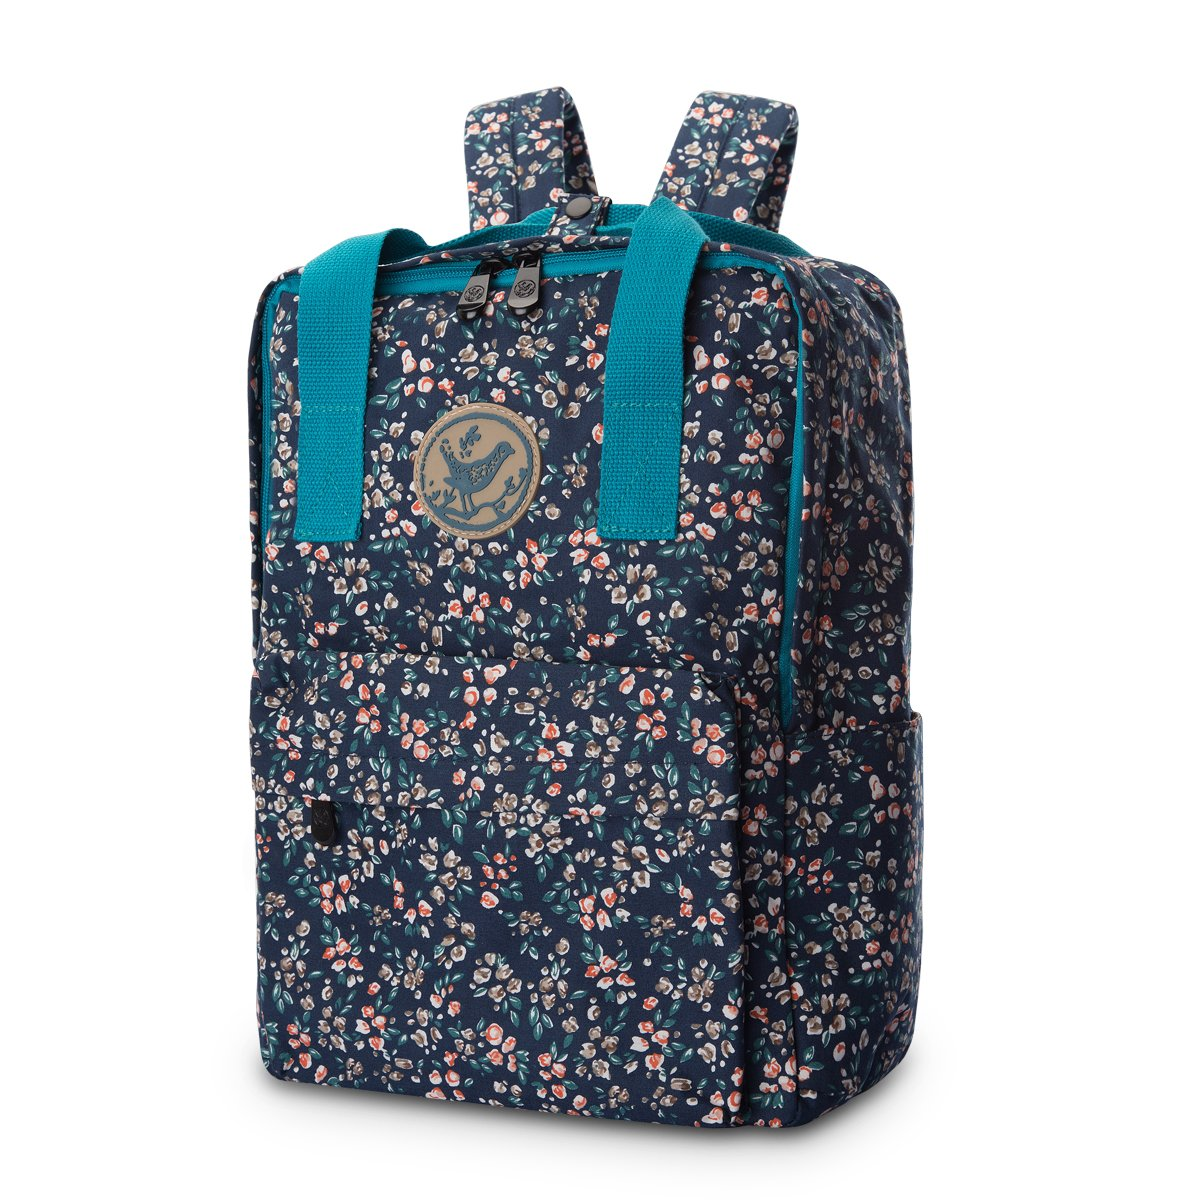 dc830b2e7860 JAMMYLIZARD Cute Canvas Backpack Handbag Lightweight Floral Print for Girls  and Women Laptop School Travel, Blue and Pink Vintage Ditsy